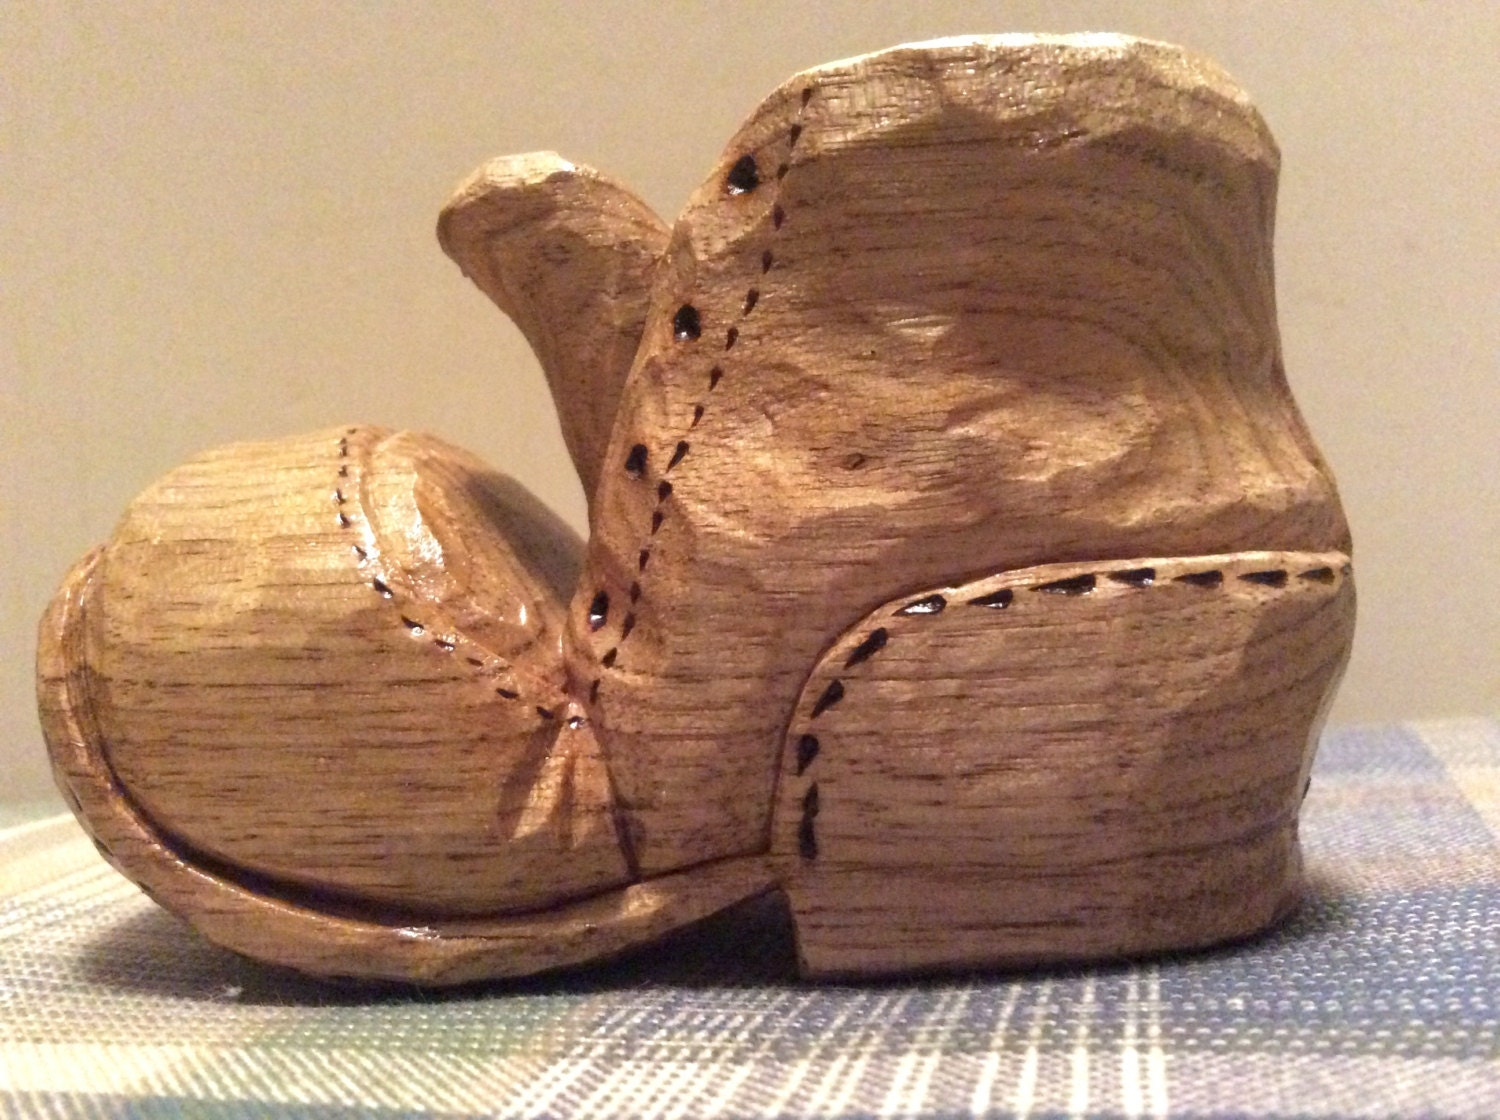 Whittled shoe hand carved butternut wood carving